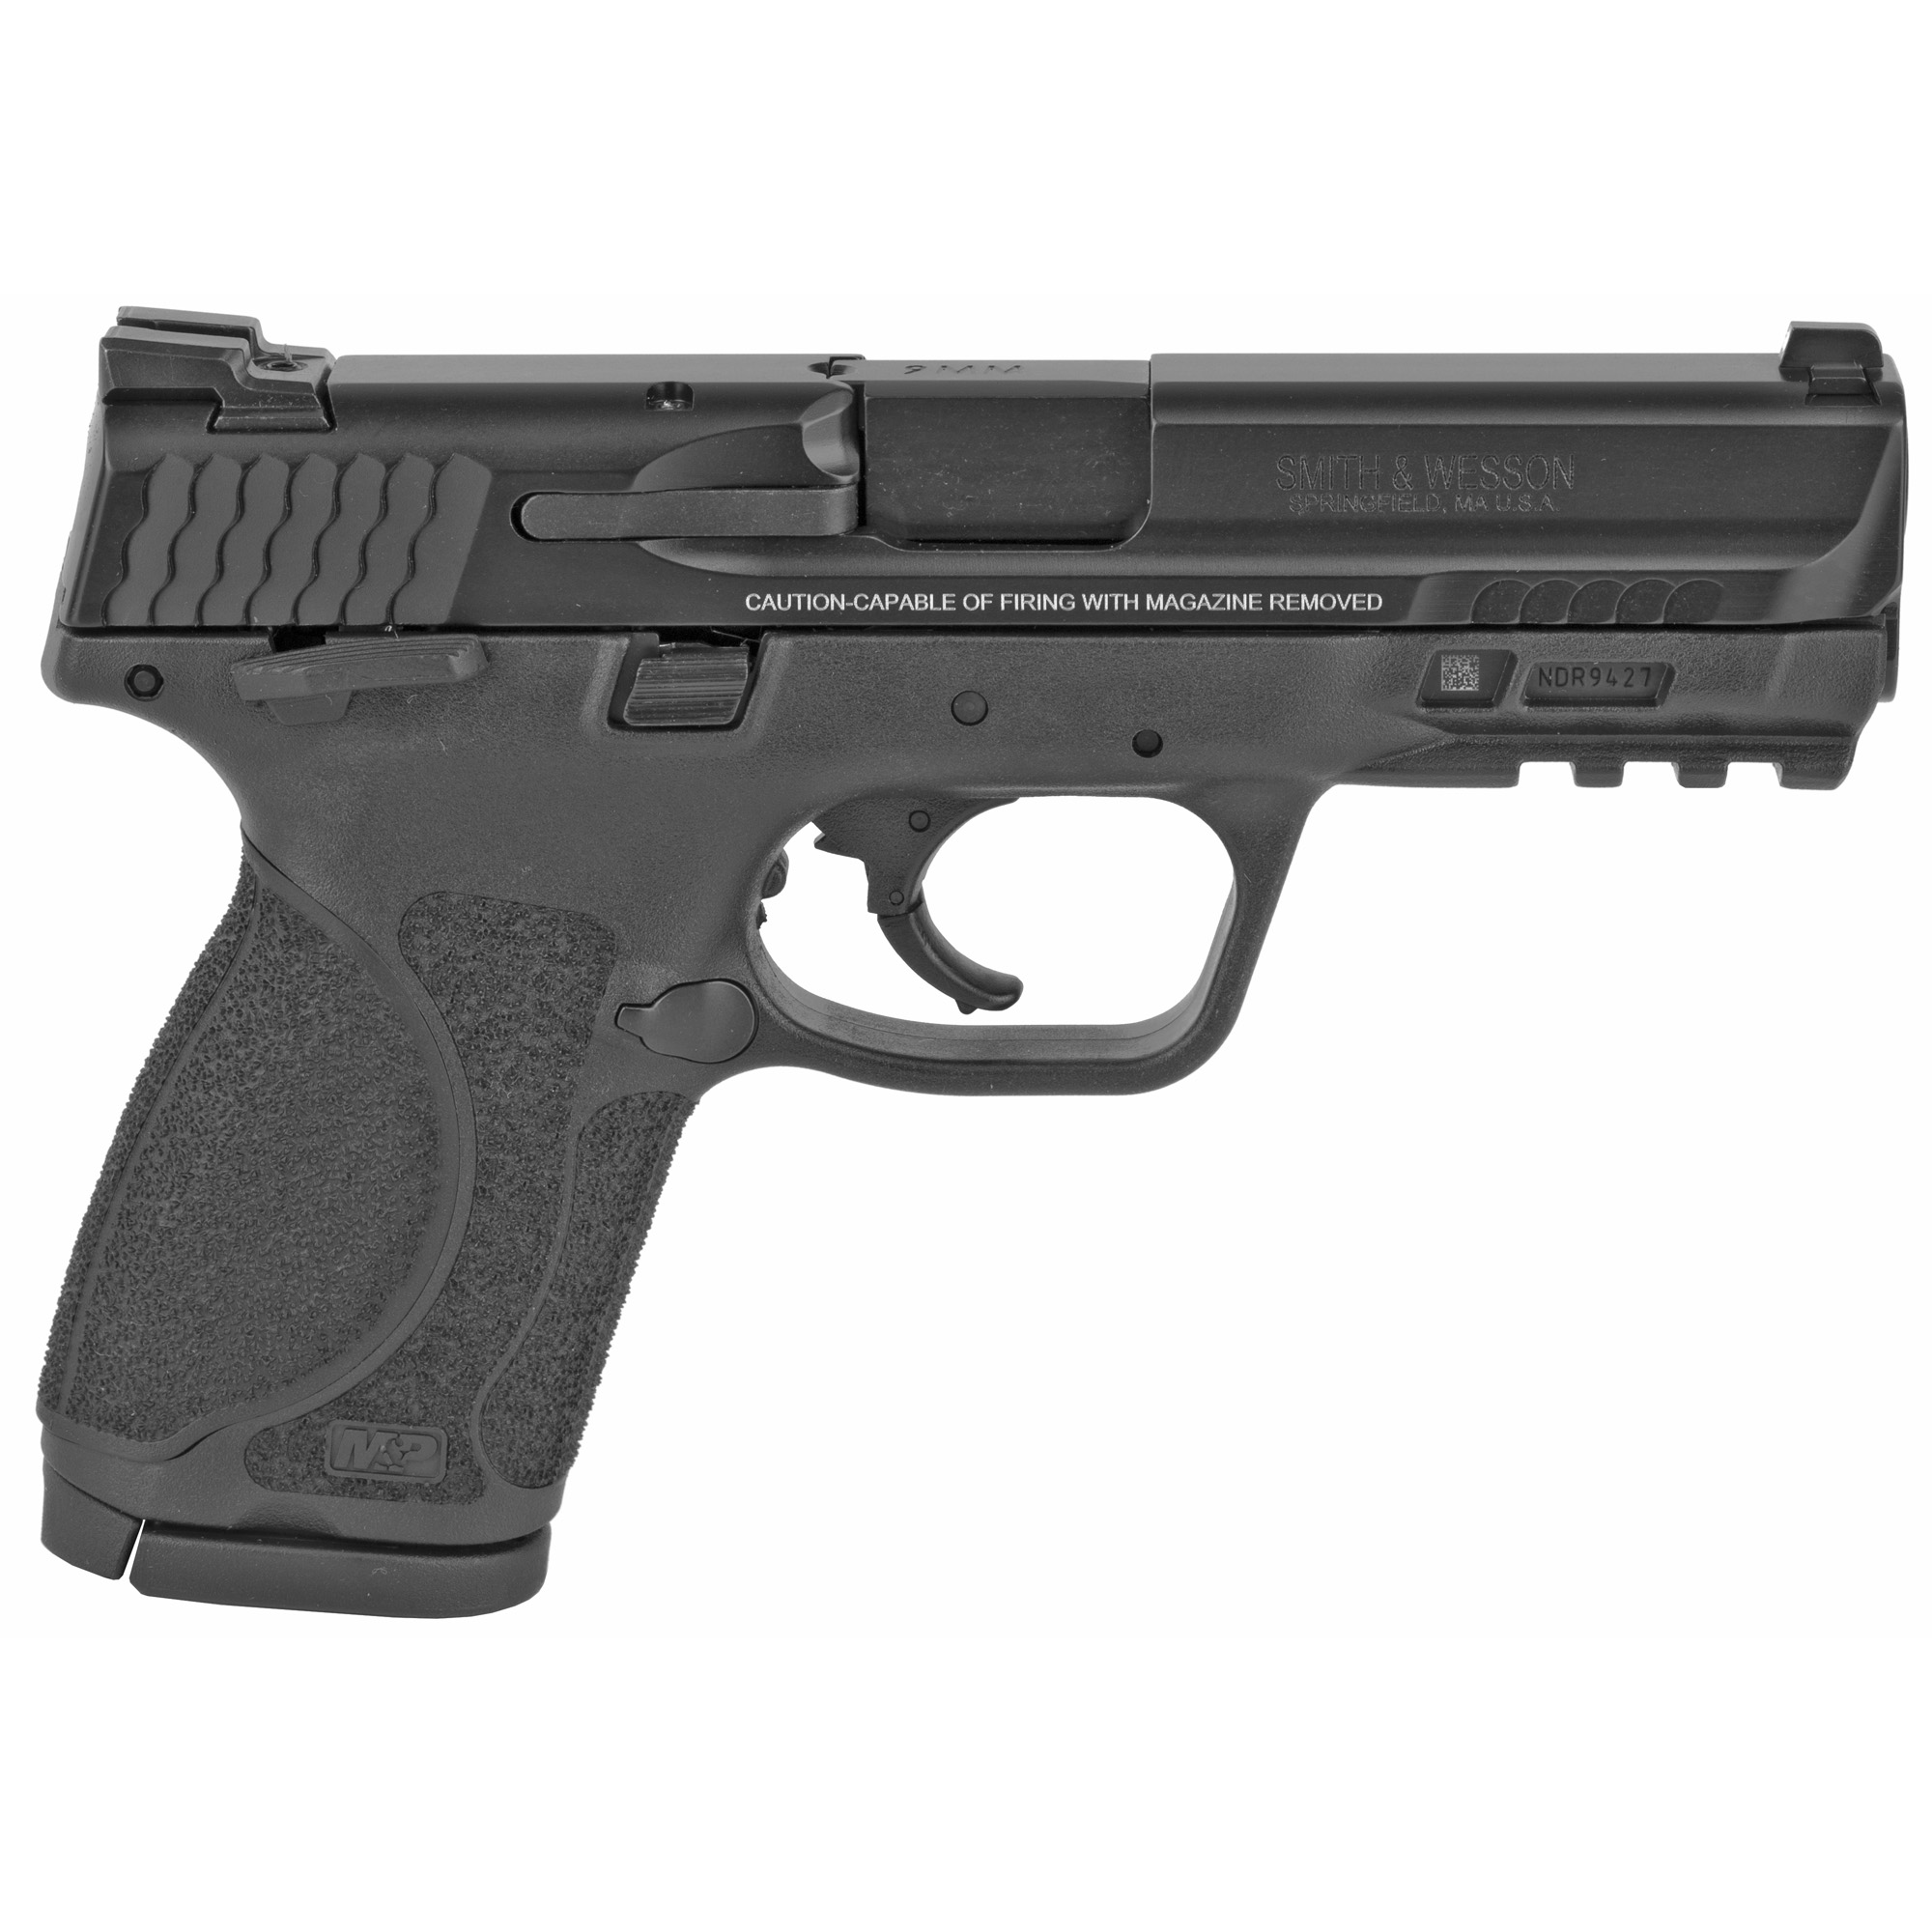 """Smith & Wesson M&P 2.0 Striker Fired 4"""" 9mm 15rd Fixed Sights - Black-img-1"""